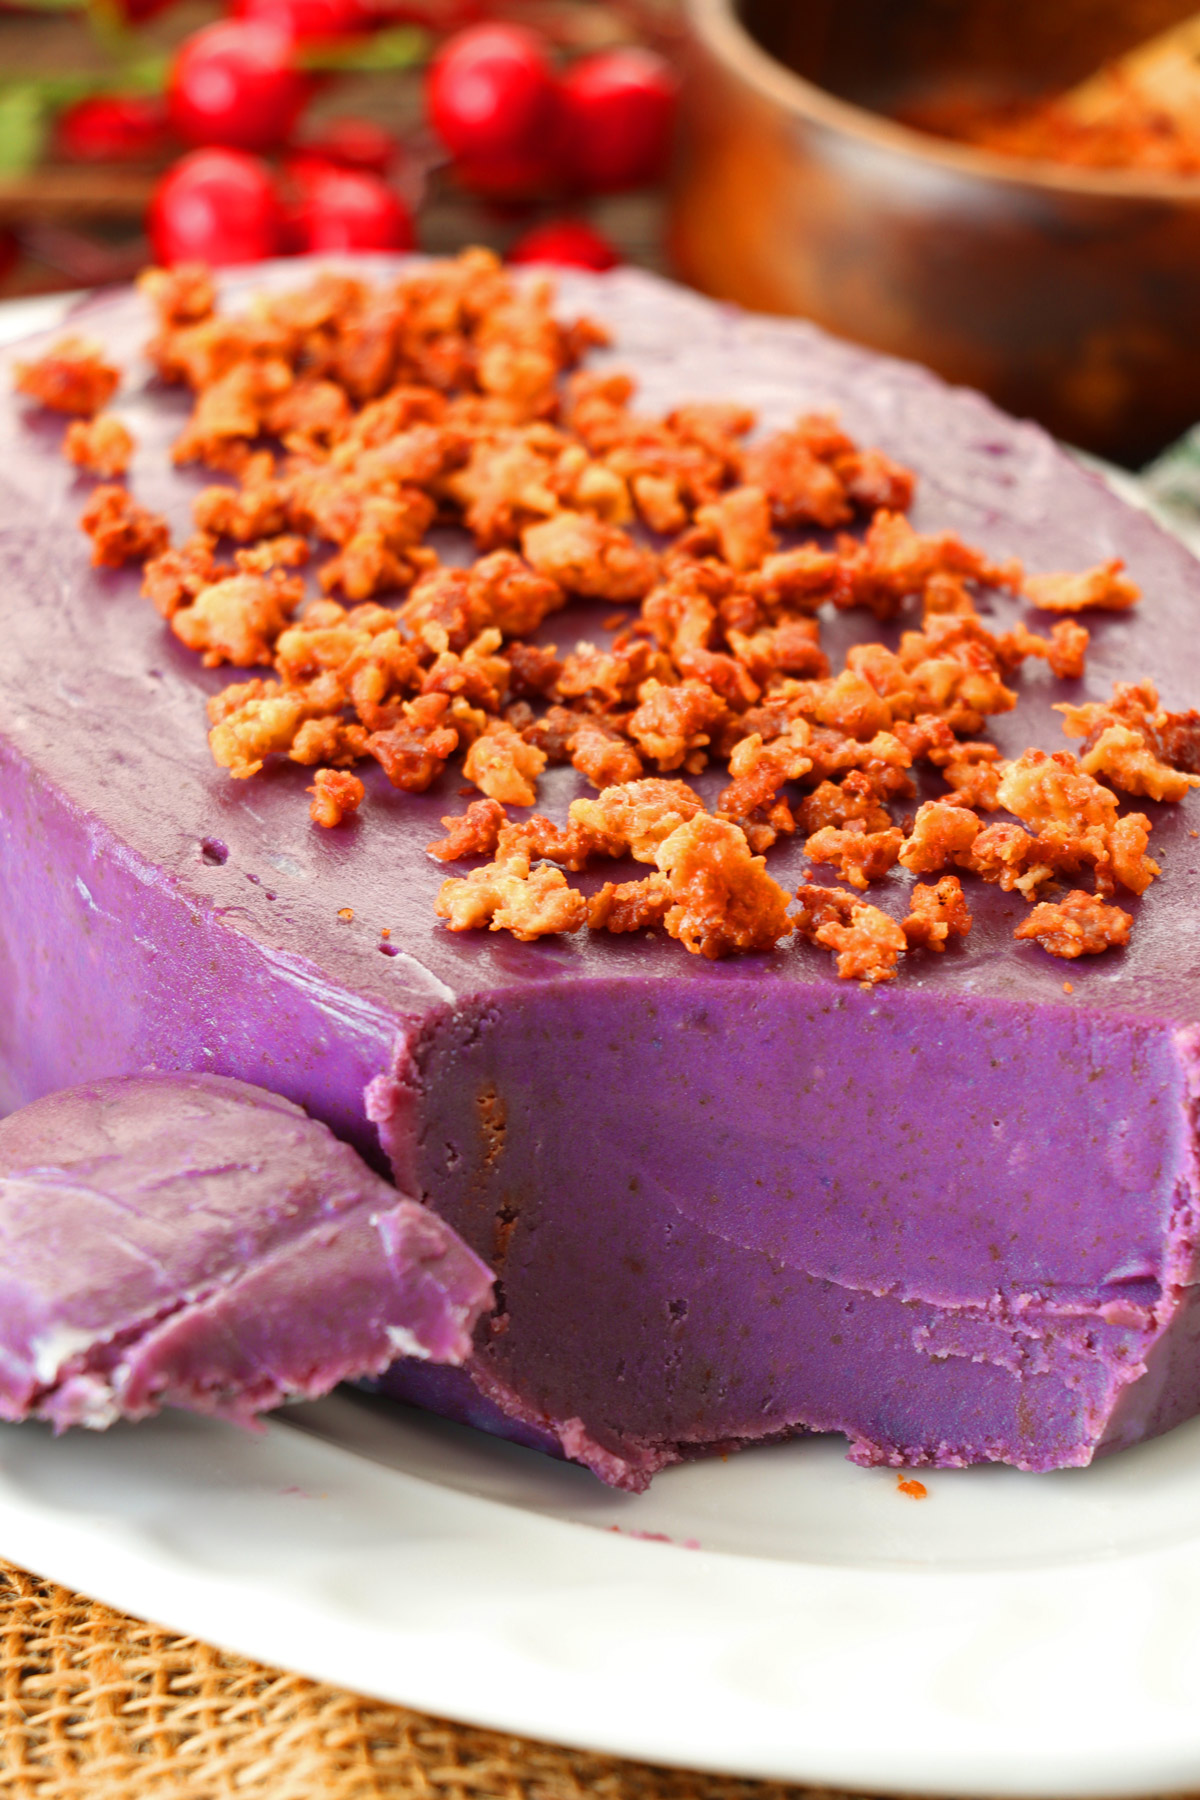 Smooth and creamy purple yam jam with coconut curds on top.